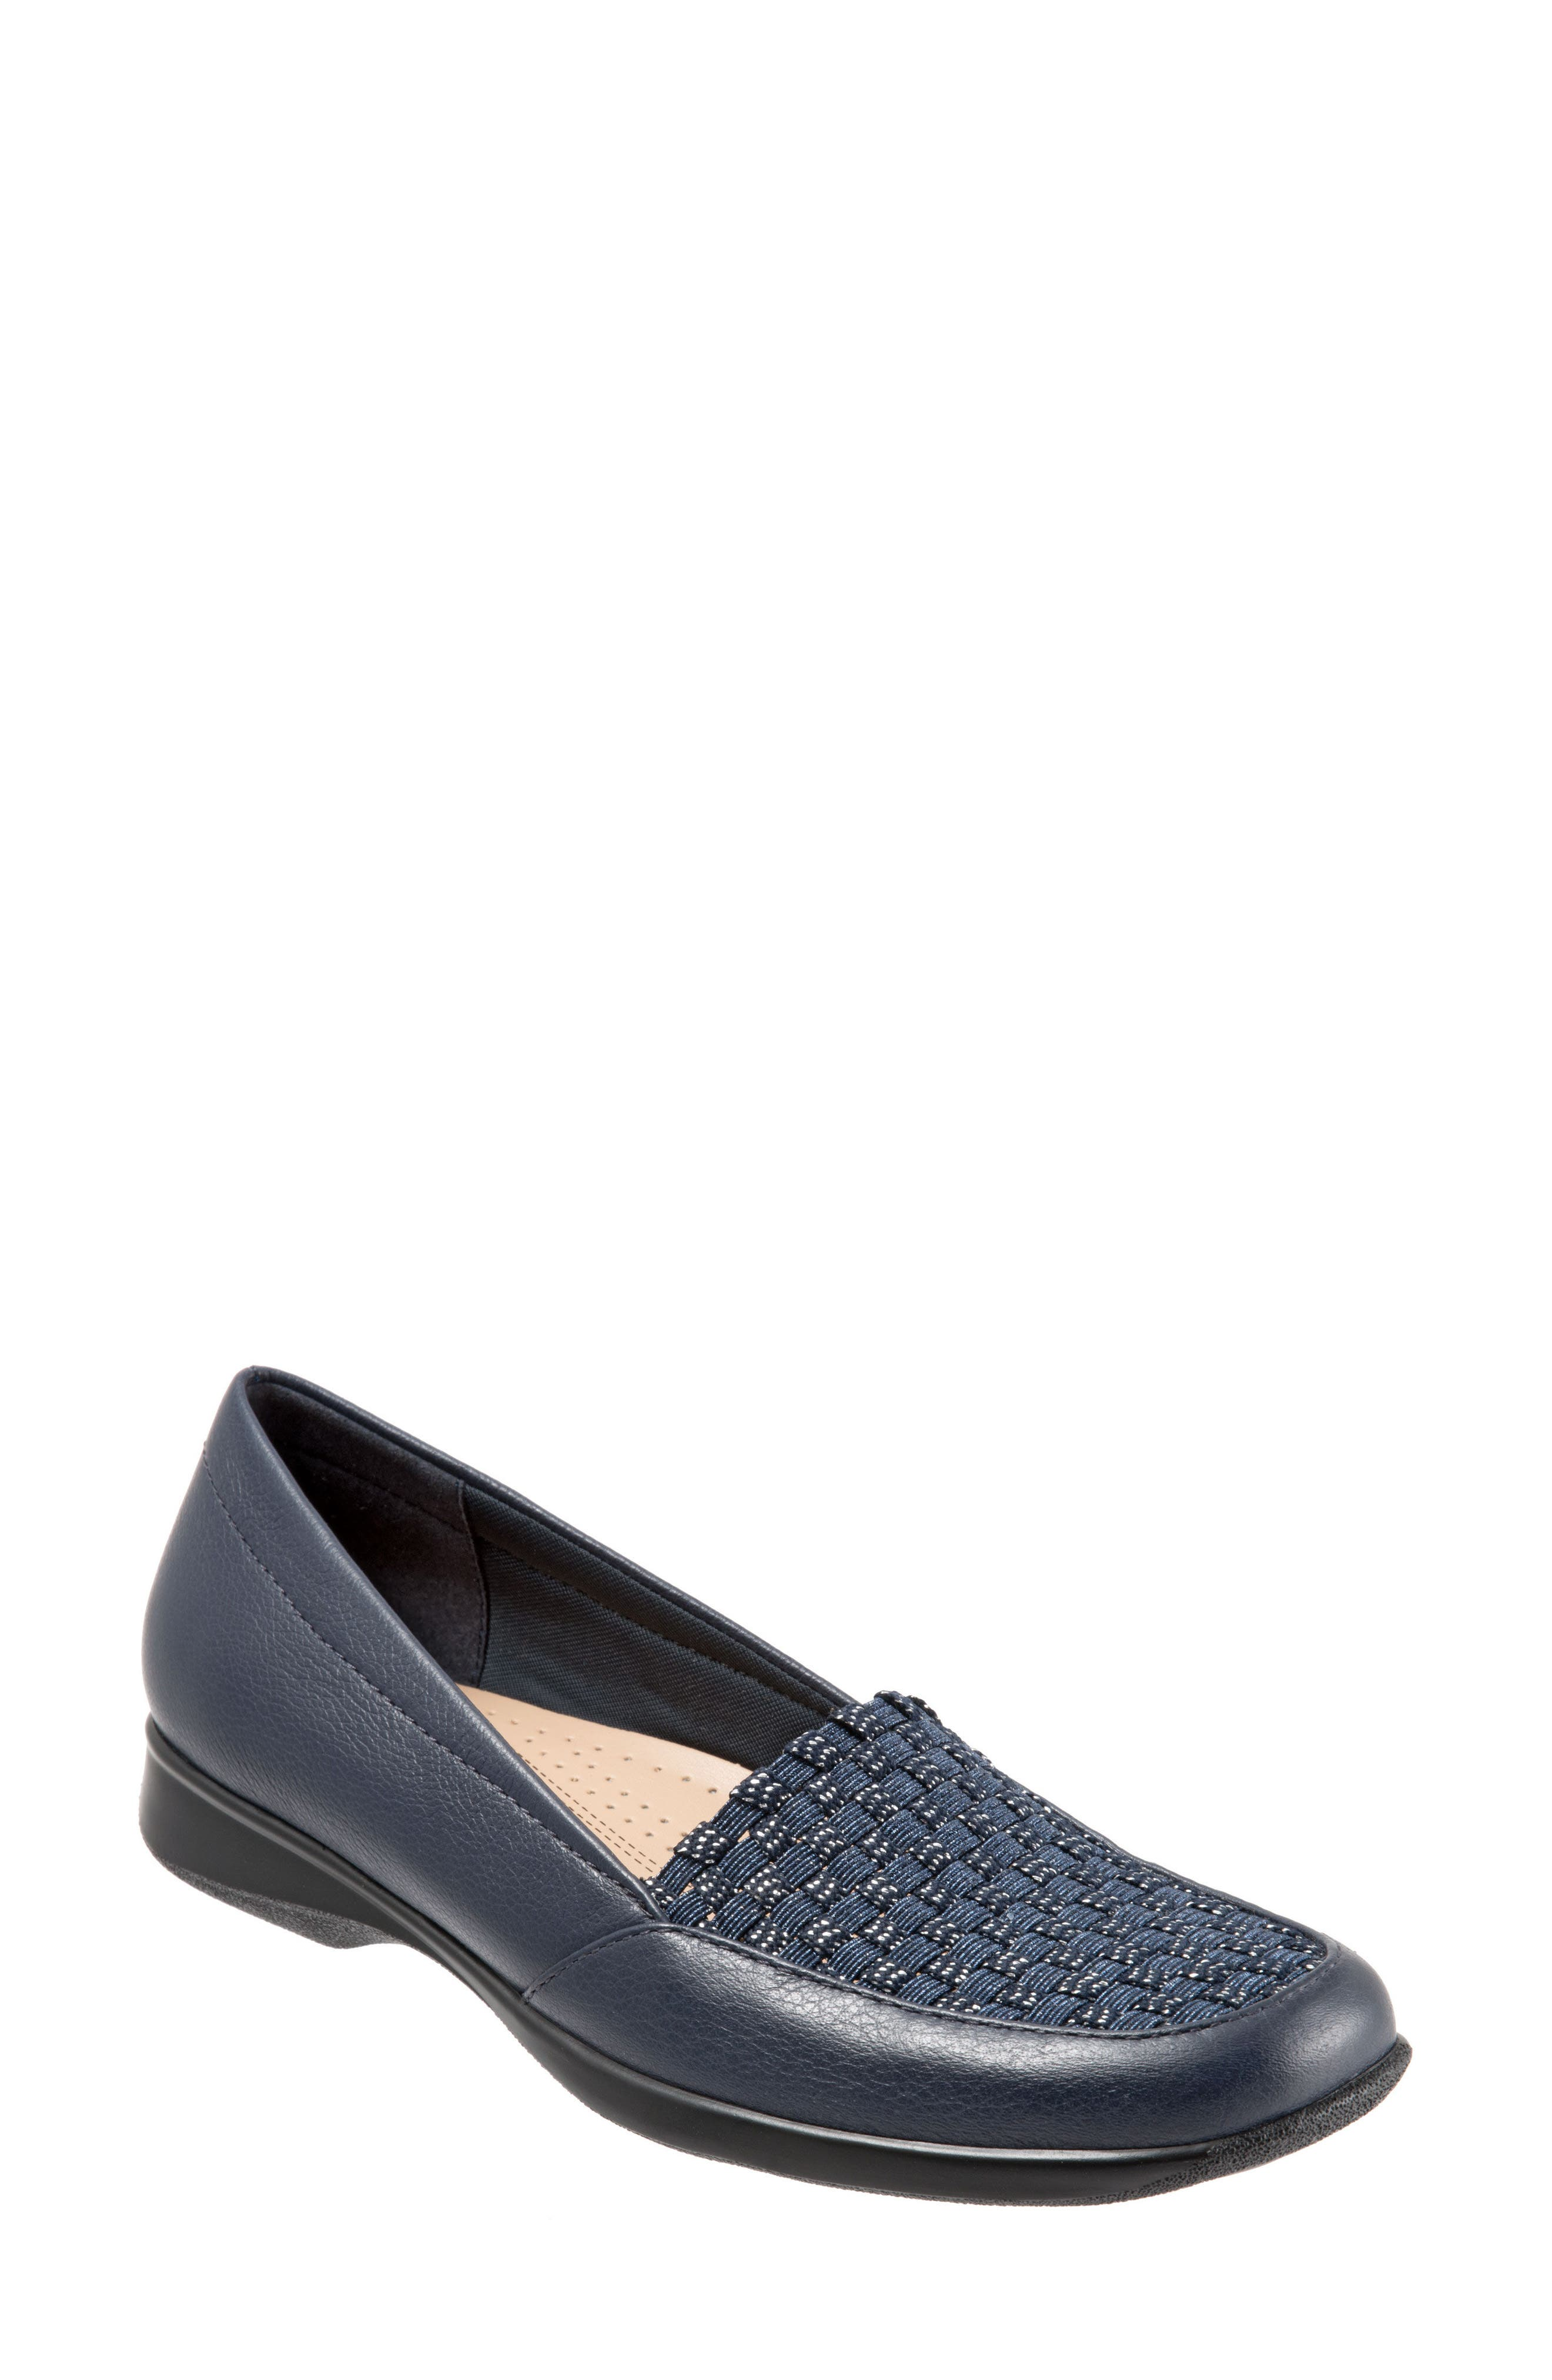 Jenkins Loafer Flat,                             Main thumbnail 1, color,                             NAVY LEATHER